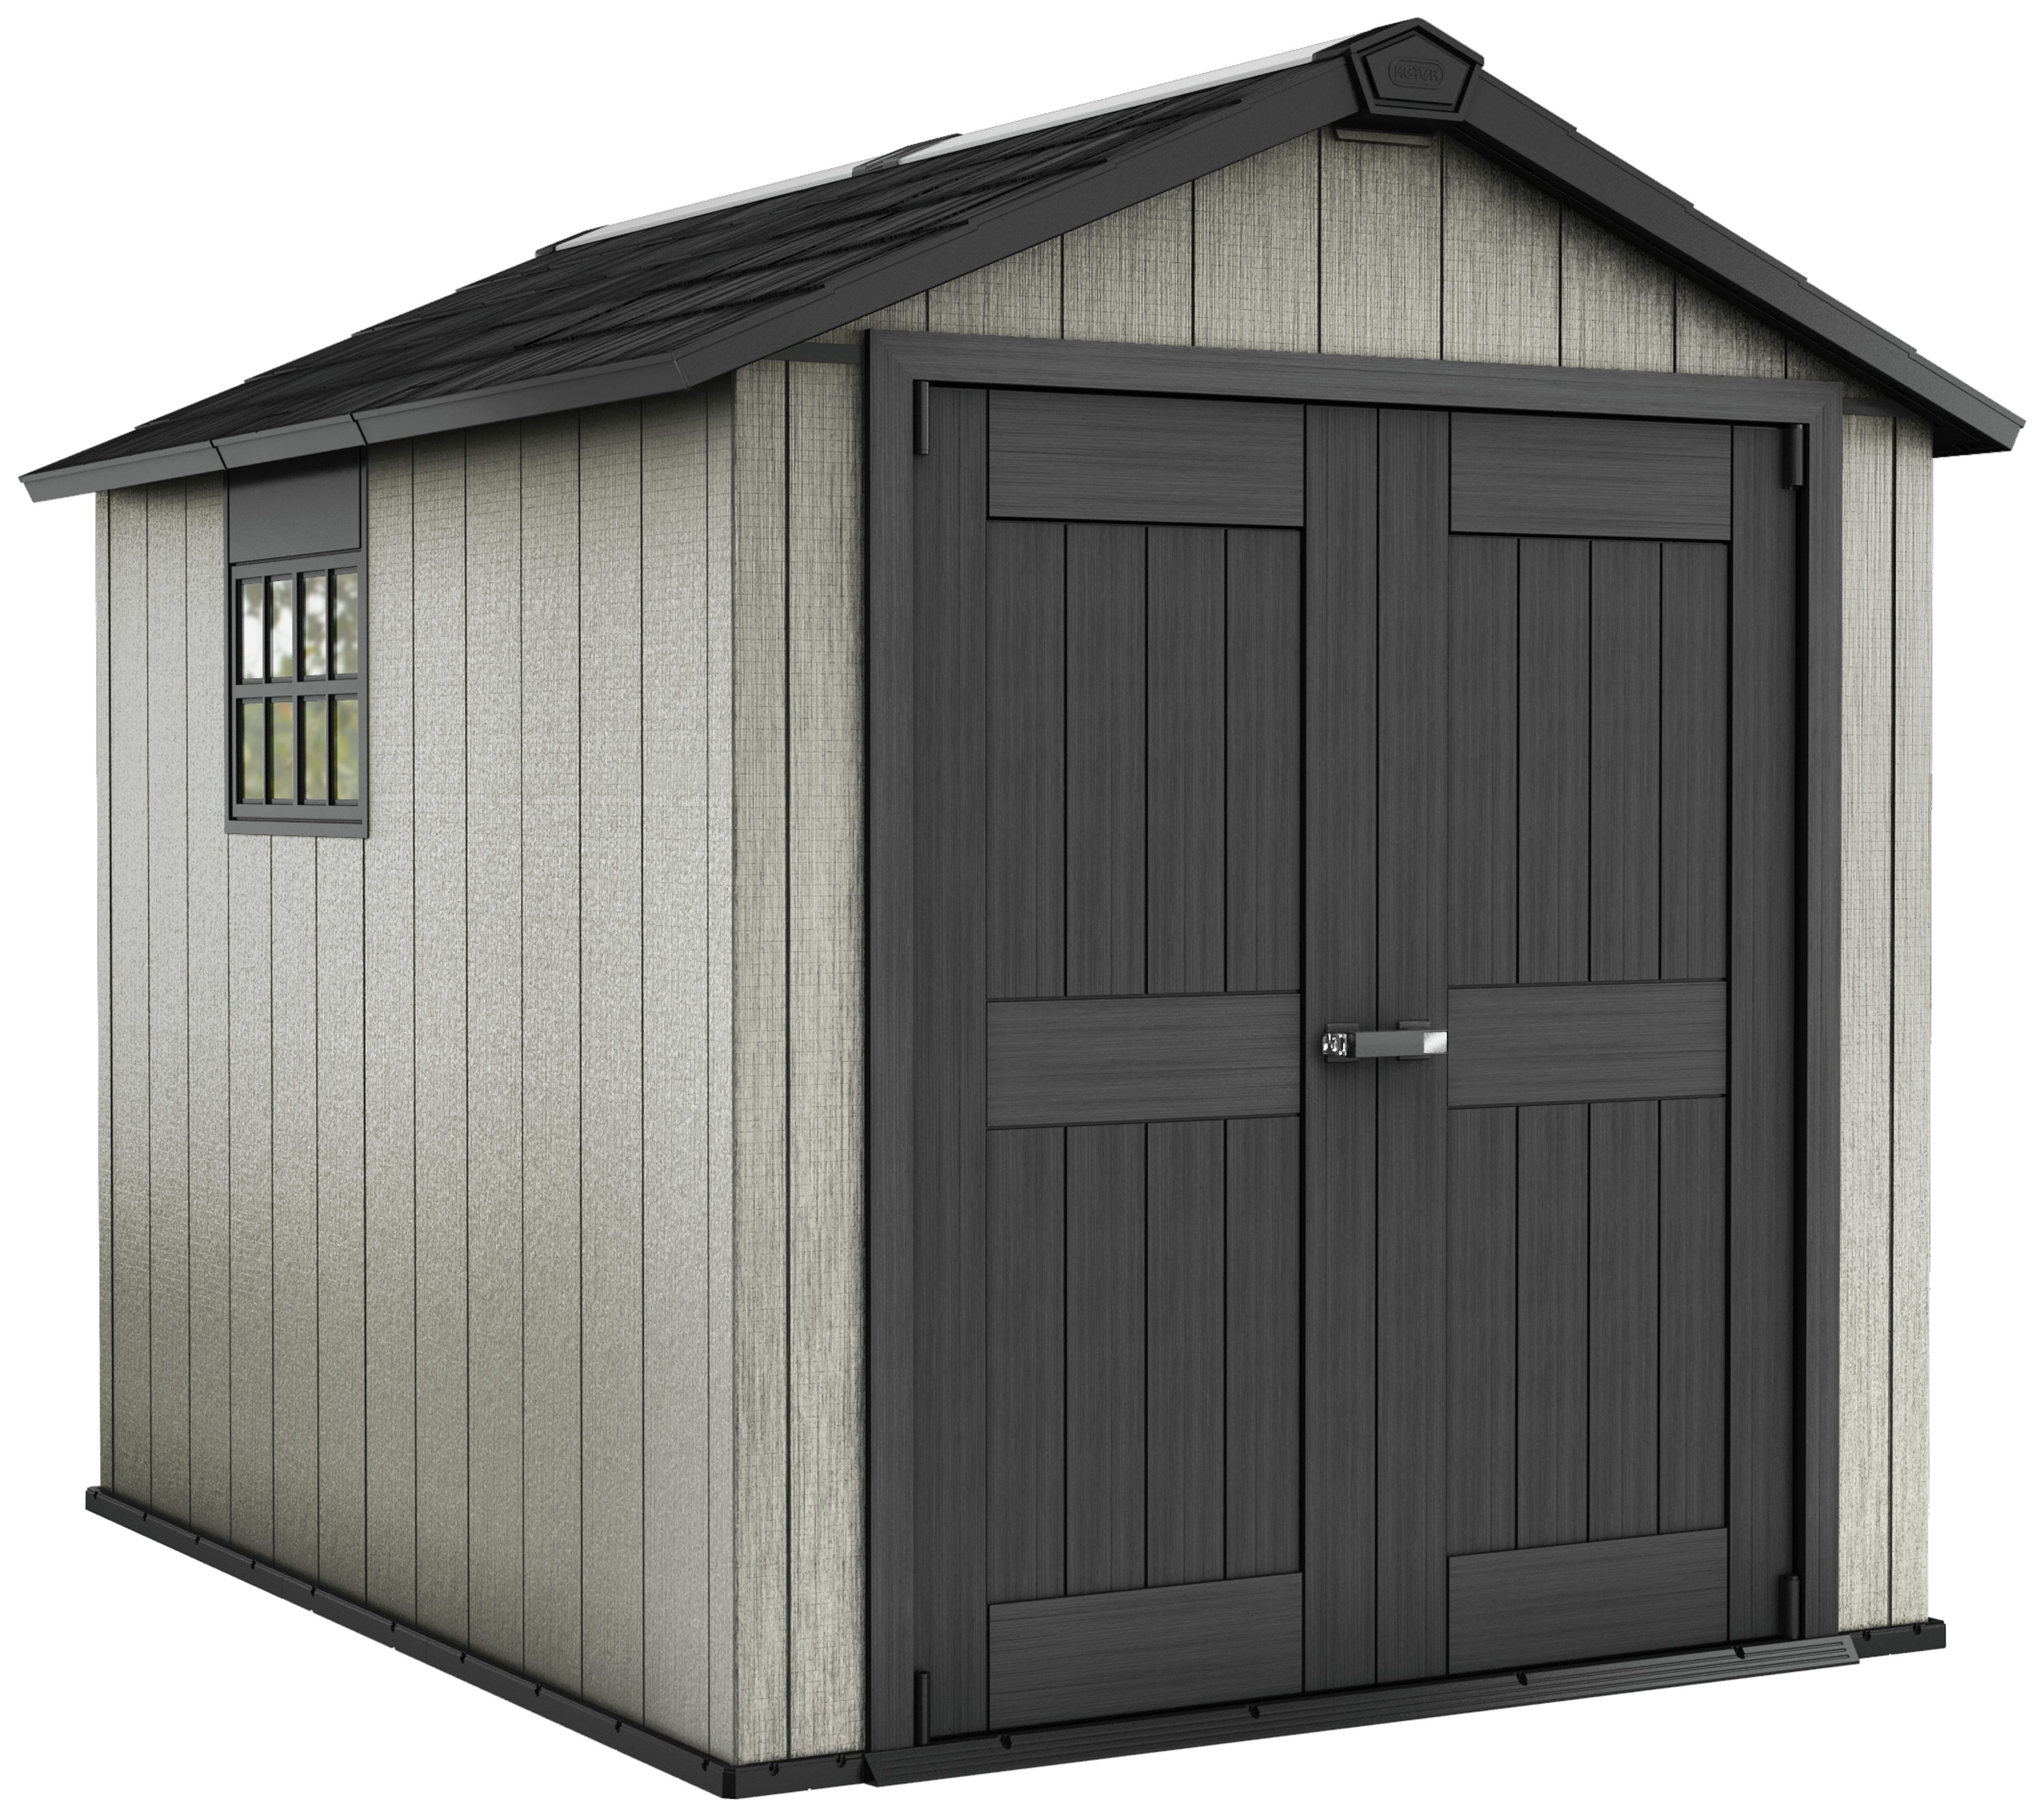 Awesome Buy Keter Oakland Plastic Garden Shed   7.5 X 9ft At Argos.co.uk   Your  Online Shop For Sheds, Sheds And Bases, Conservatories, Sheds And  Greenhouses, ...